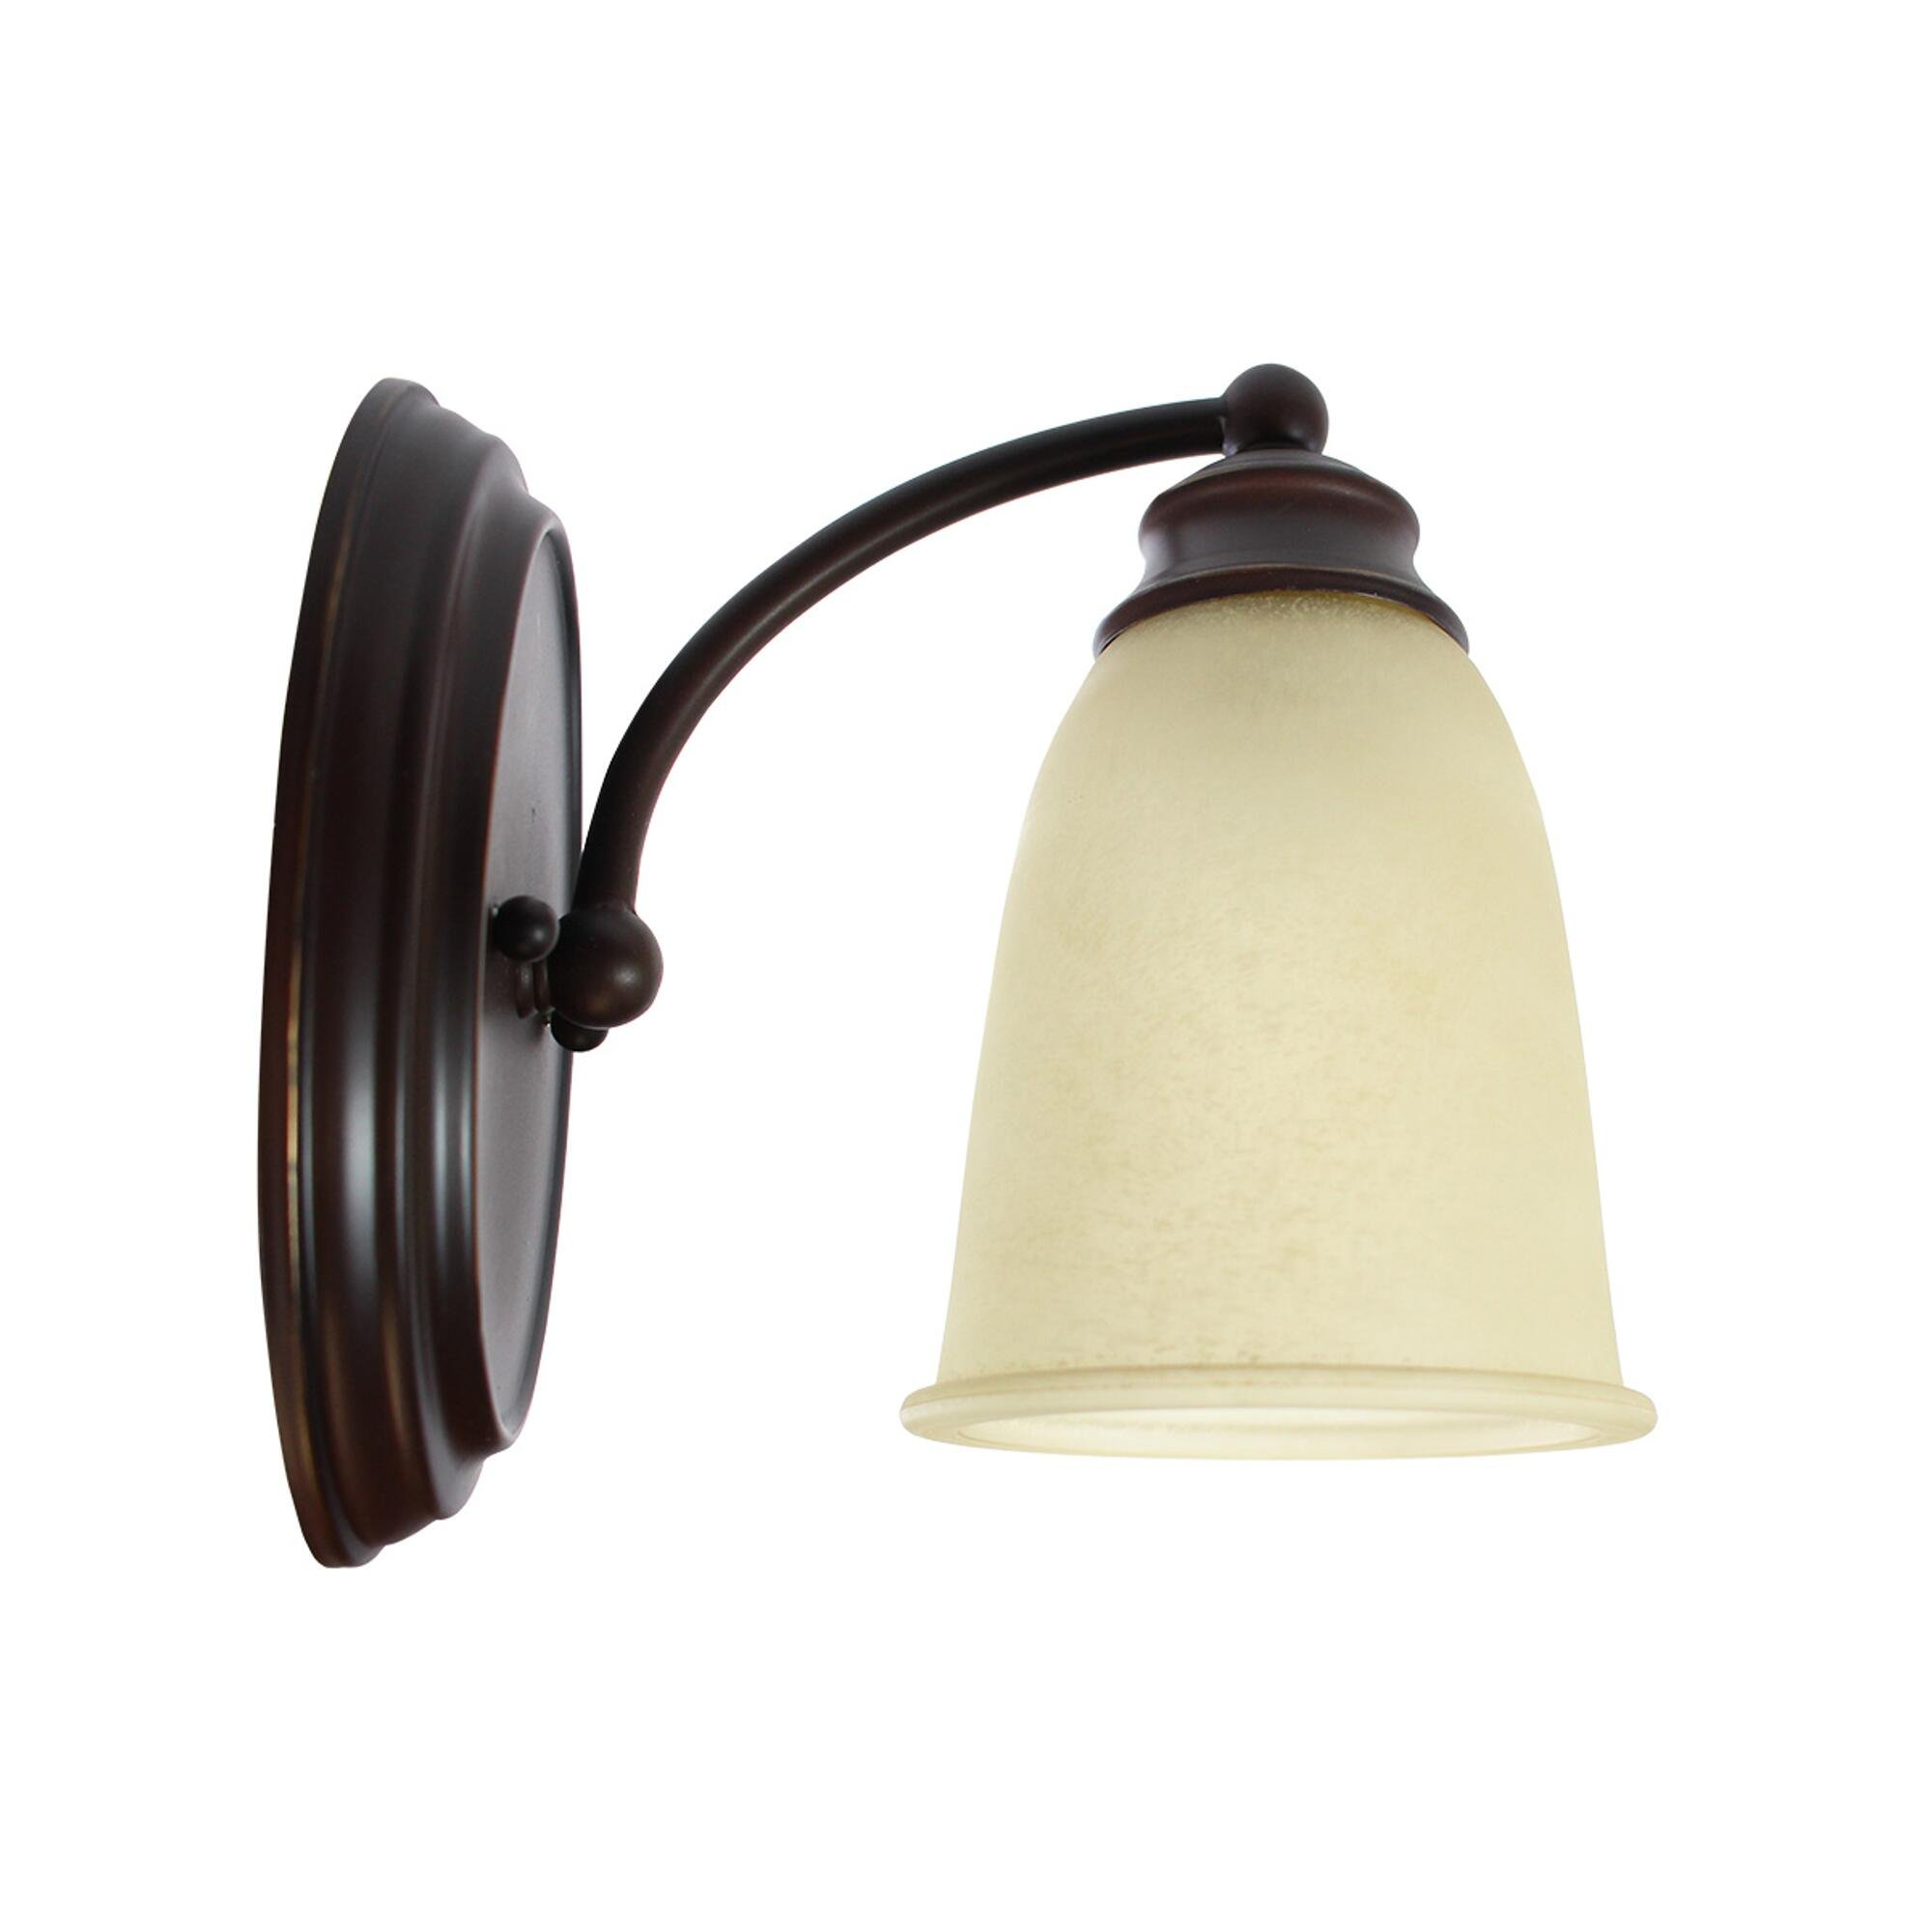 Capital Lighting 1-Light Transitional 5.5''w Sconce with Mediterranean Bronze Finish and Warm Scavo Glass by Capital Lighting